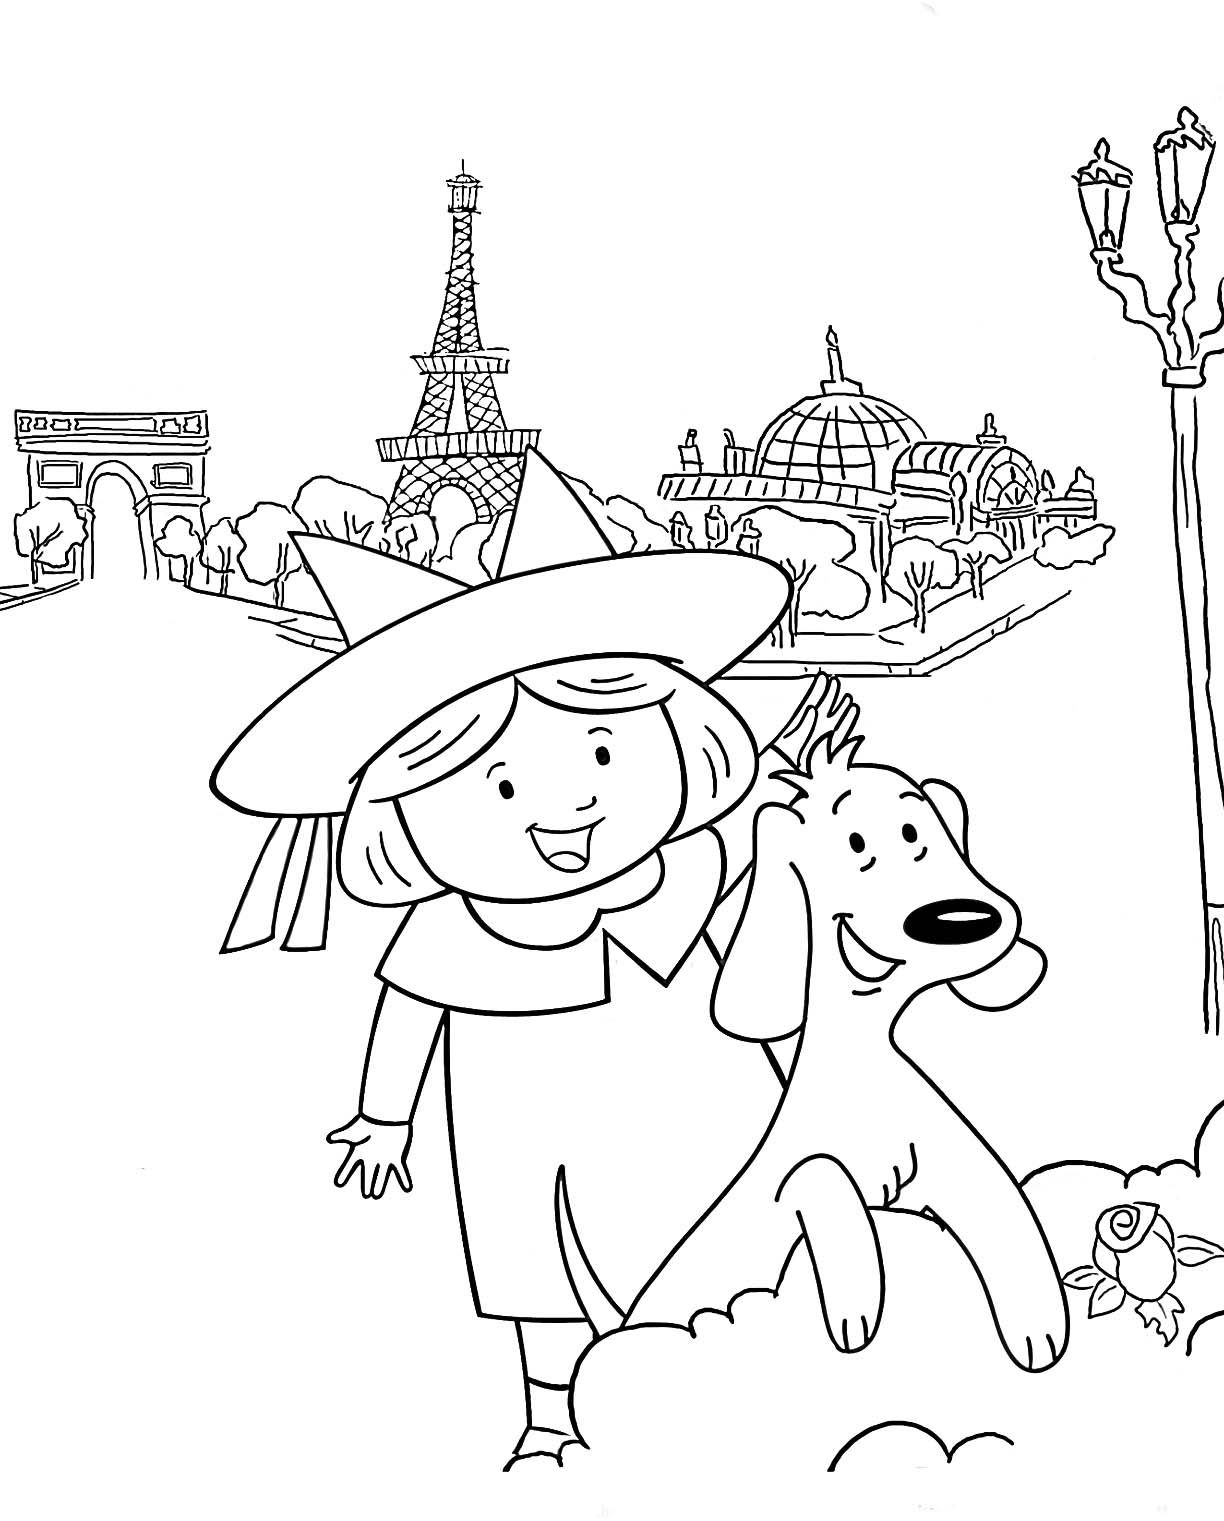 Madeline in paris coloring pages murderthestout for Madeline coloring pages printable